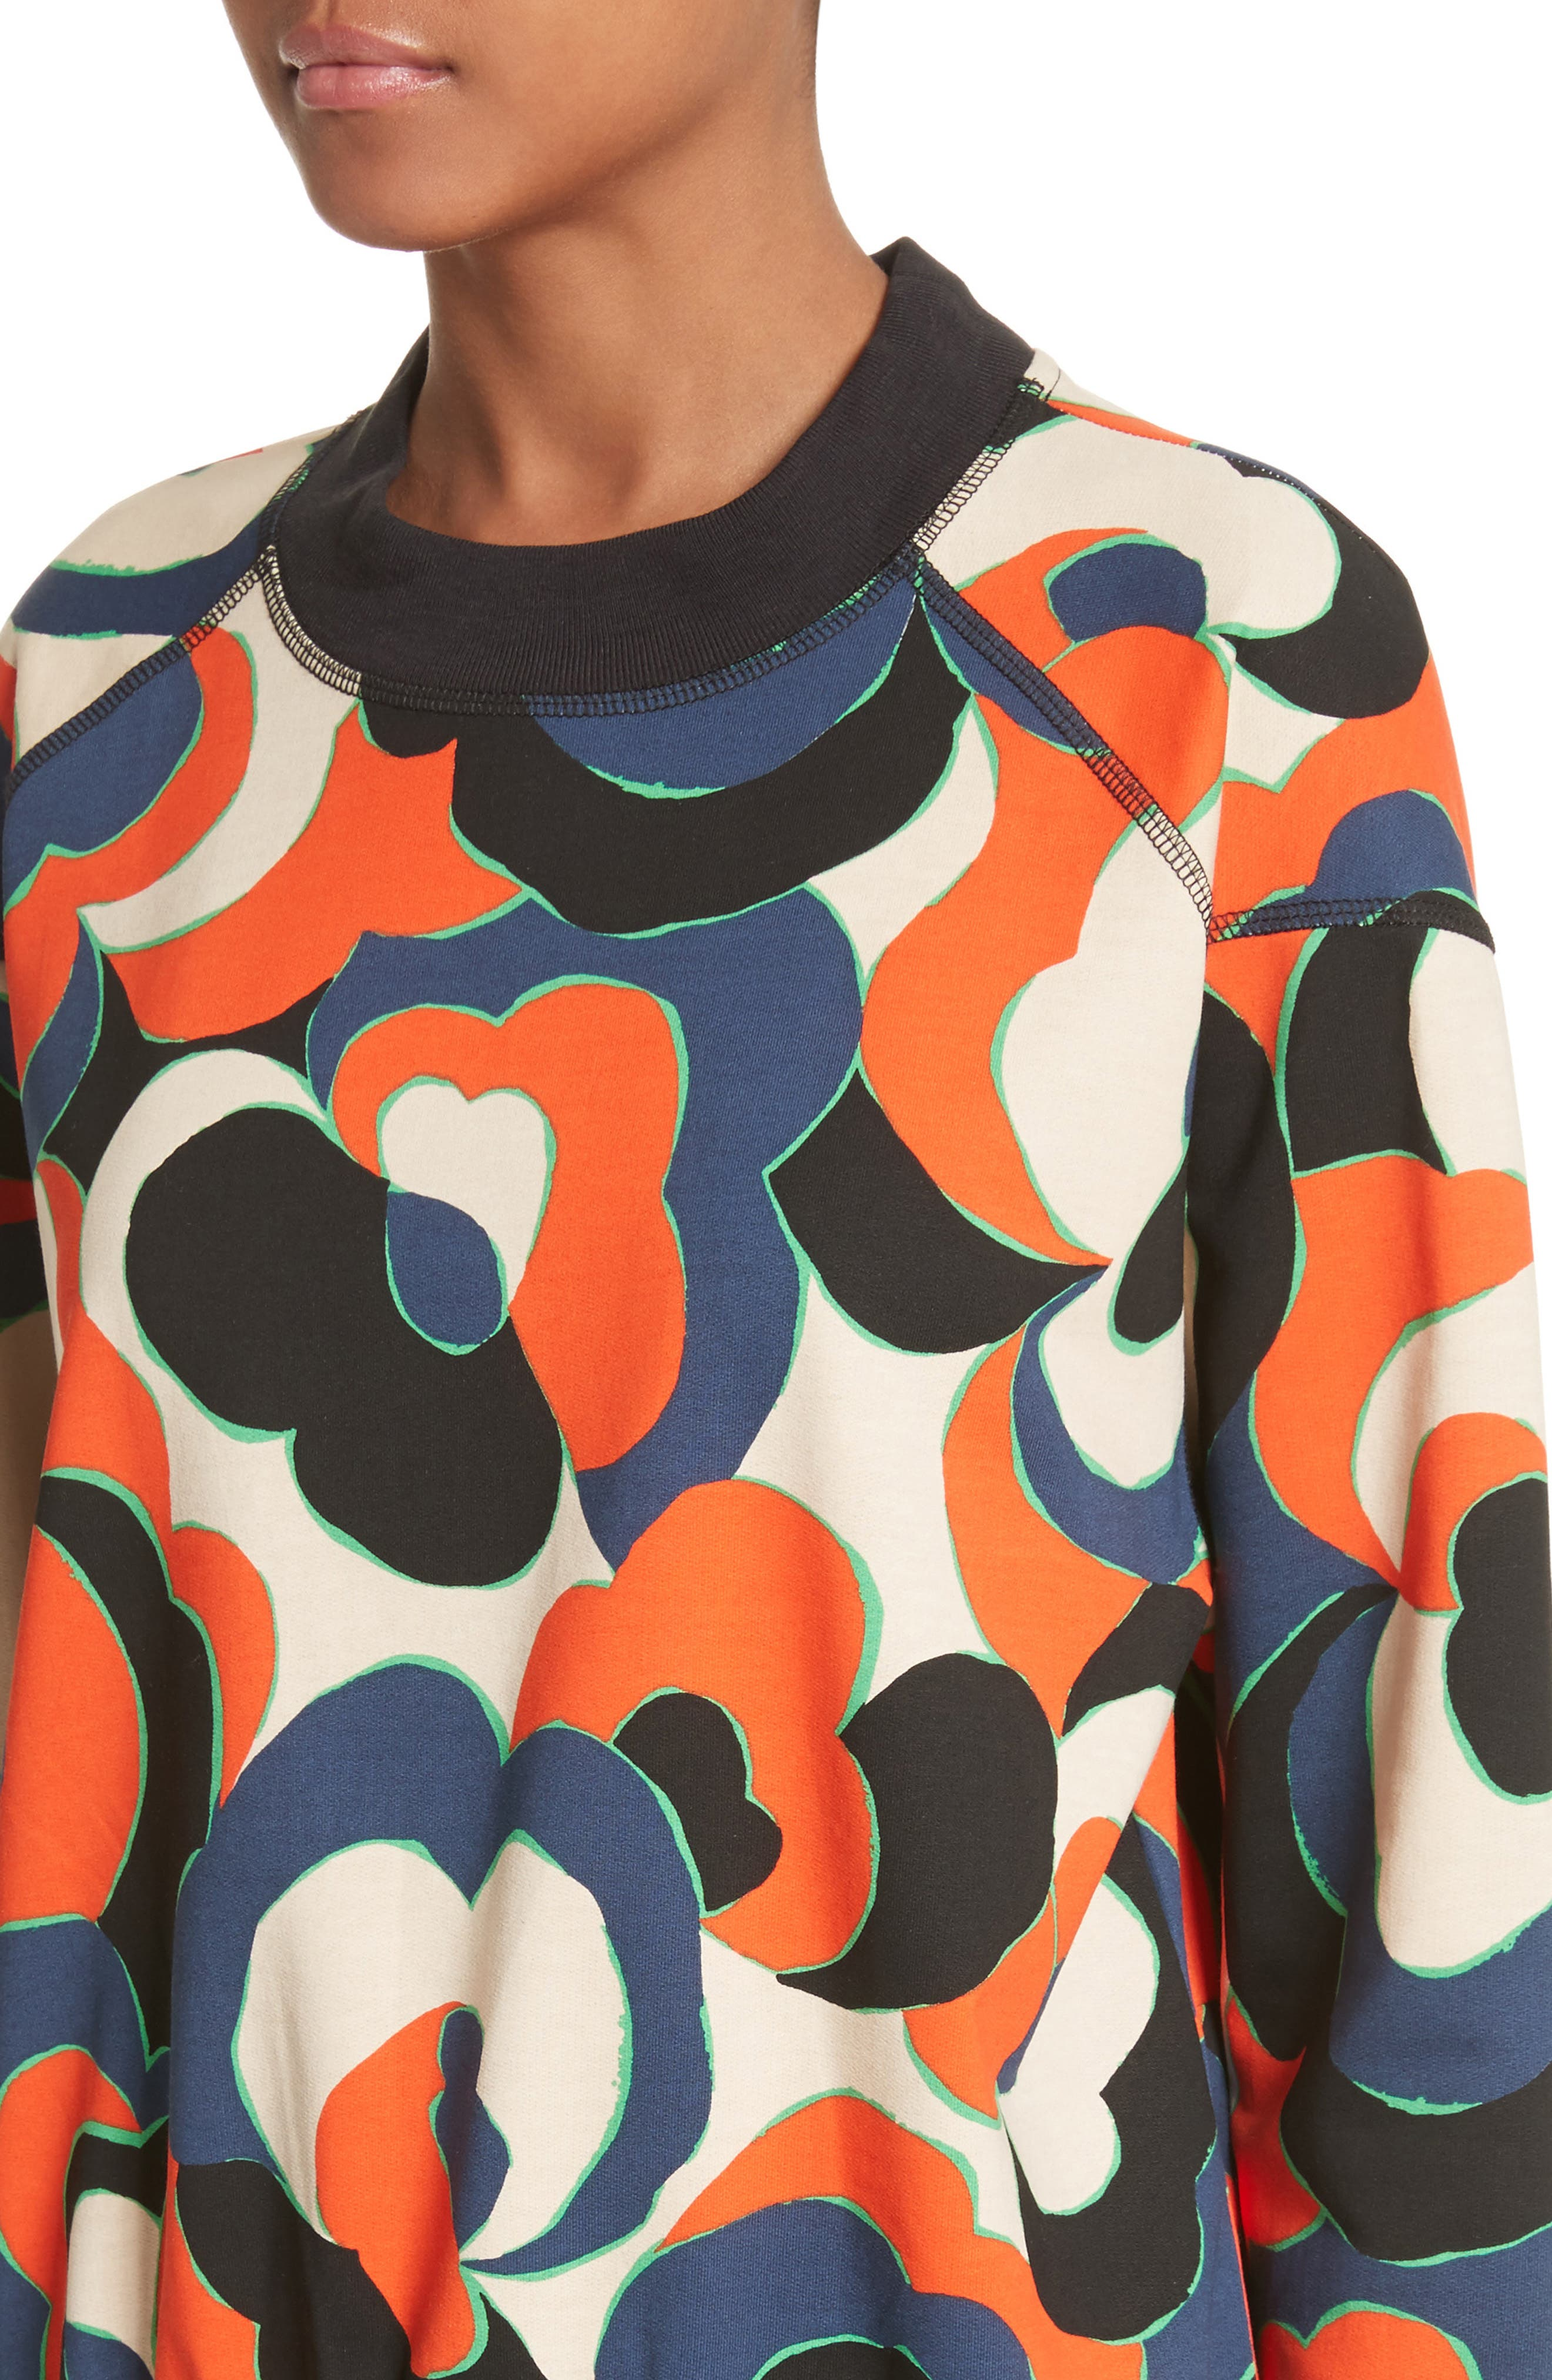 Hardmon Print Sweatshirt,                             Alternate thumbnail 4, color,                             600